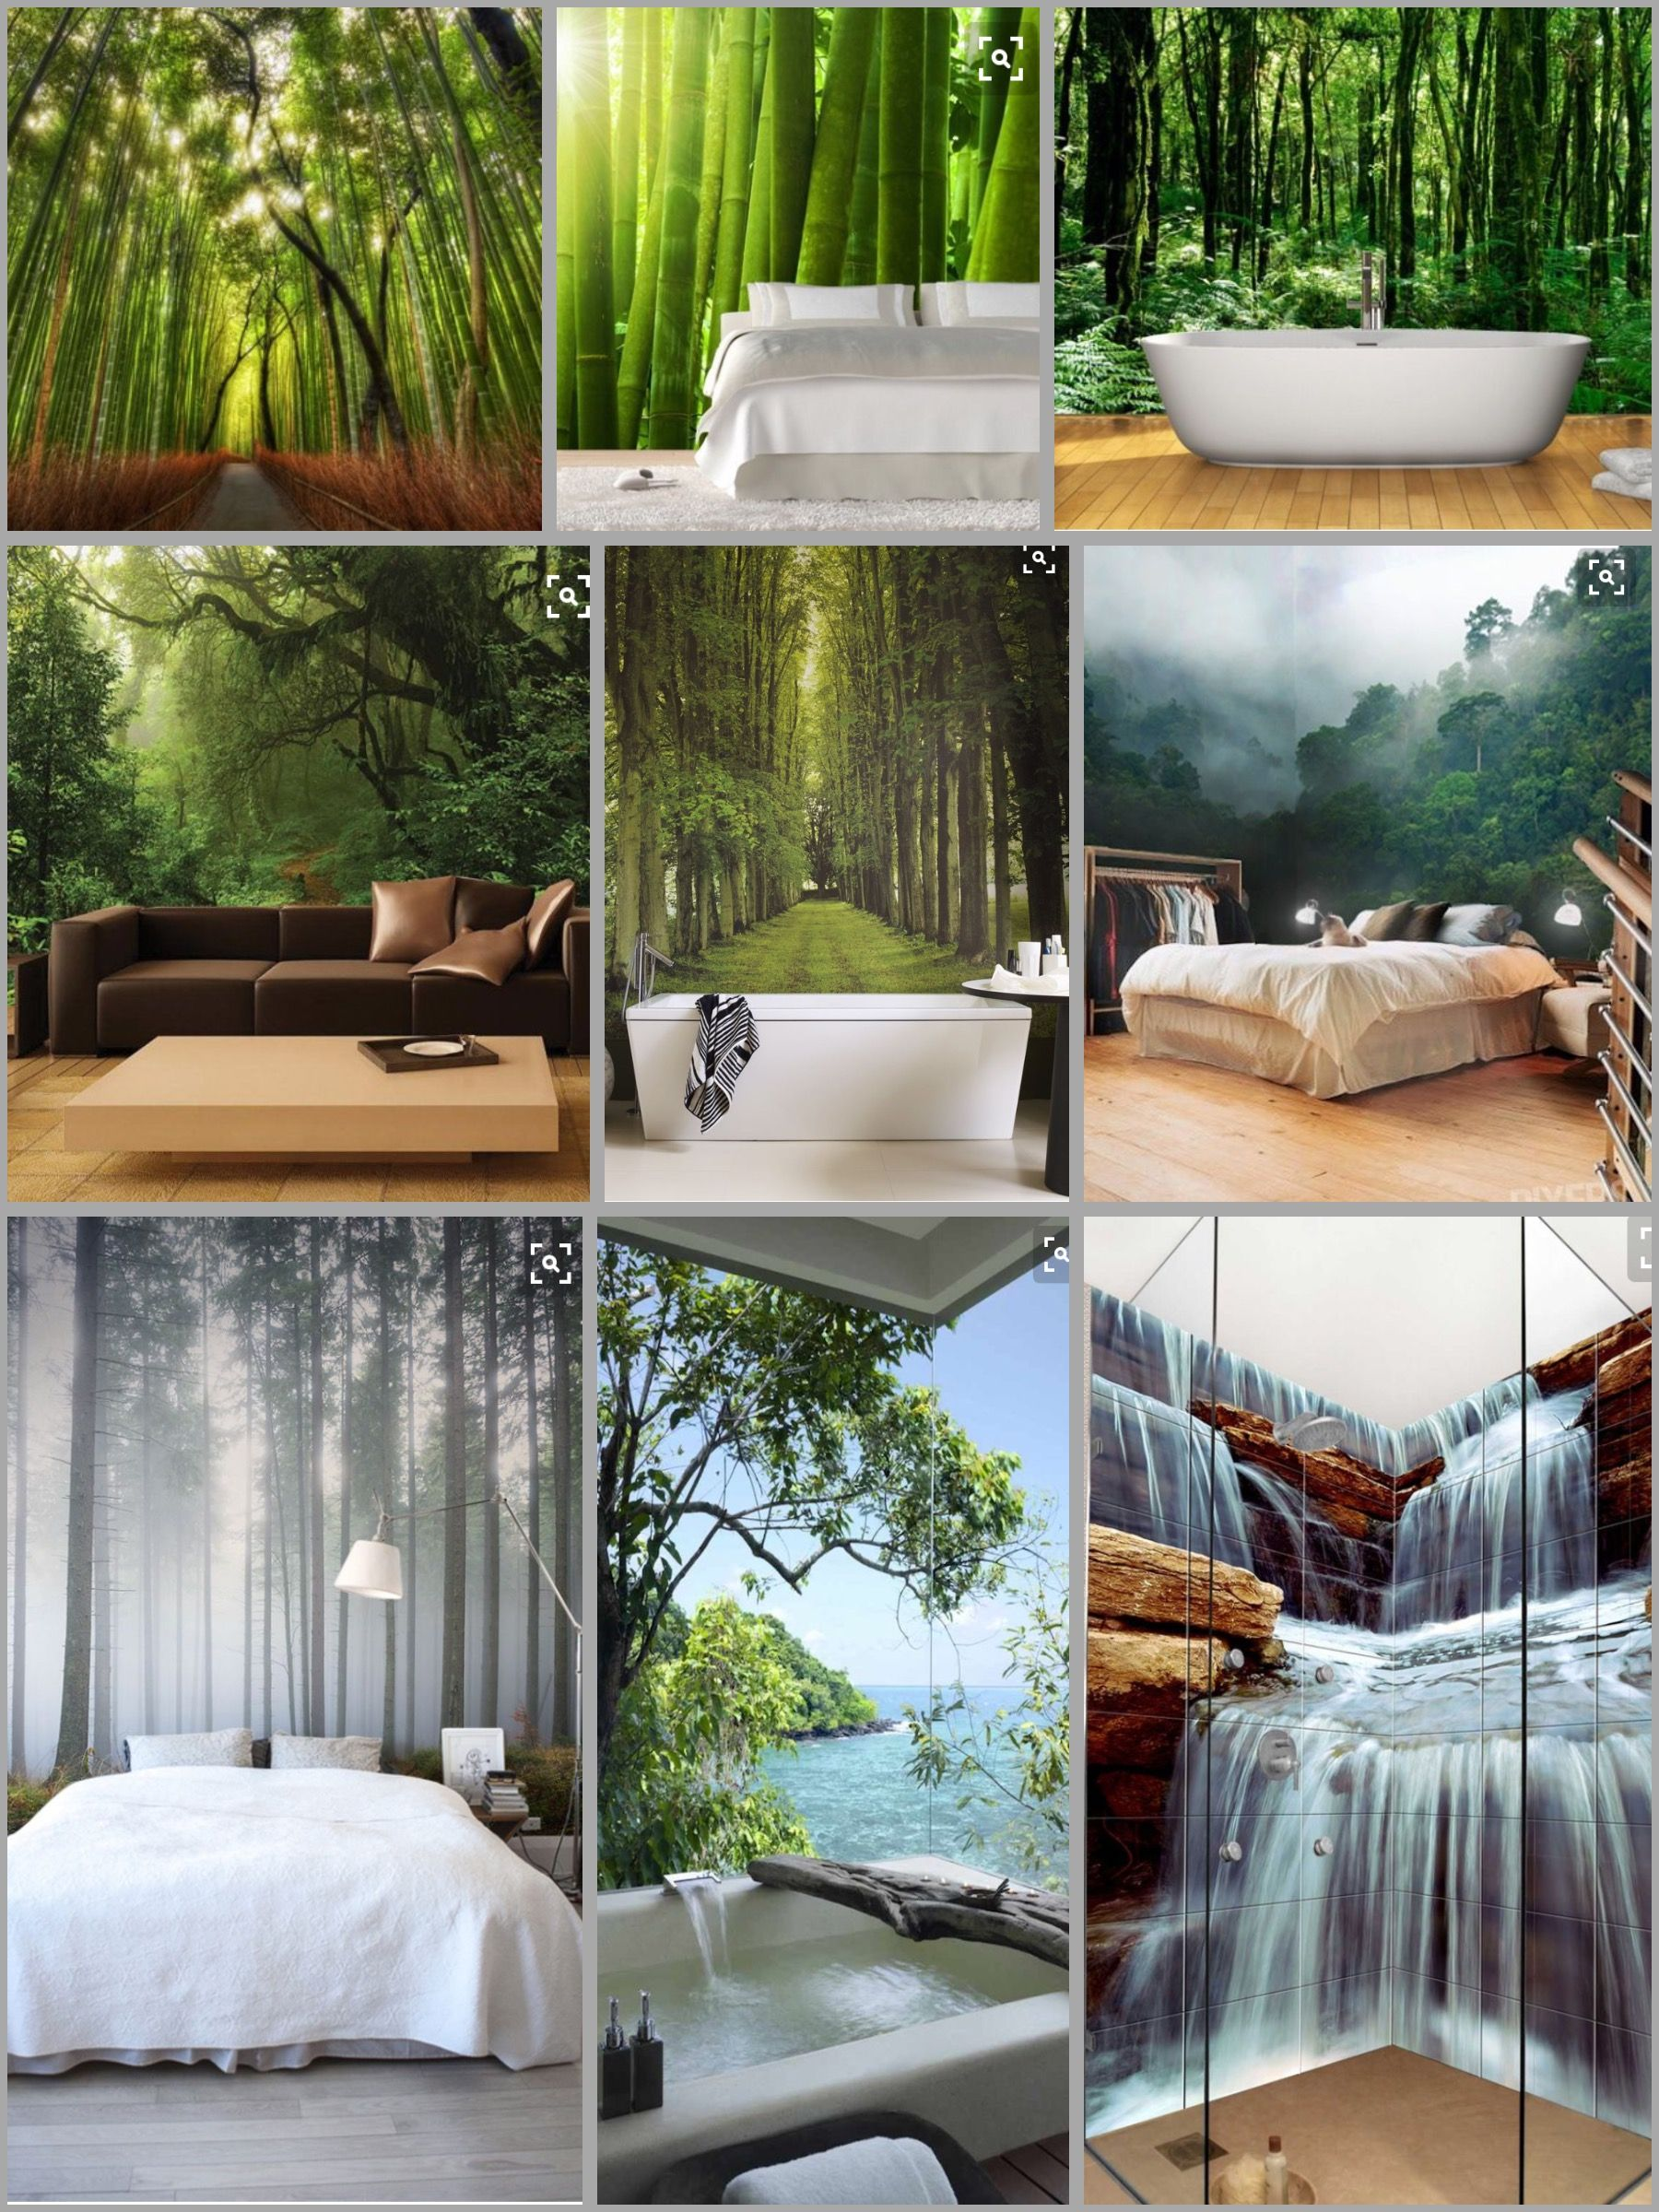 Forest Bamboo Wallpaper Bedroom Bathroom Ideas